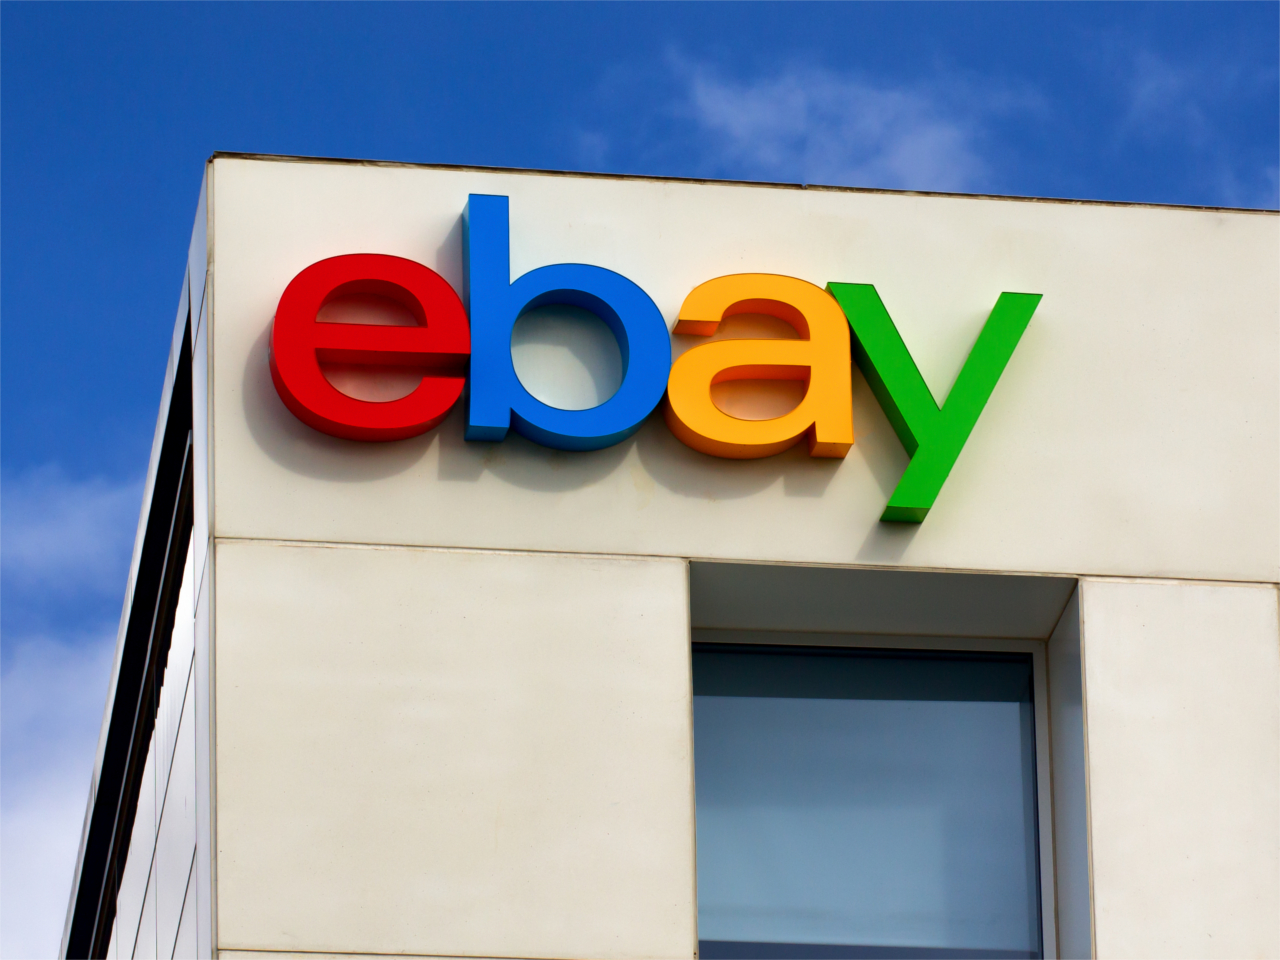 Thomas H Lee In The Lead To Buy Ebay's Enterprise Unit